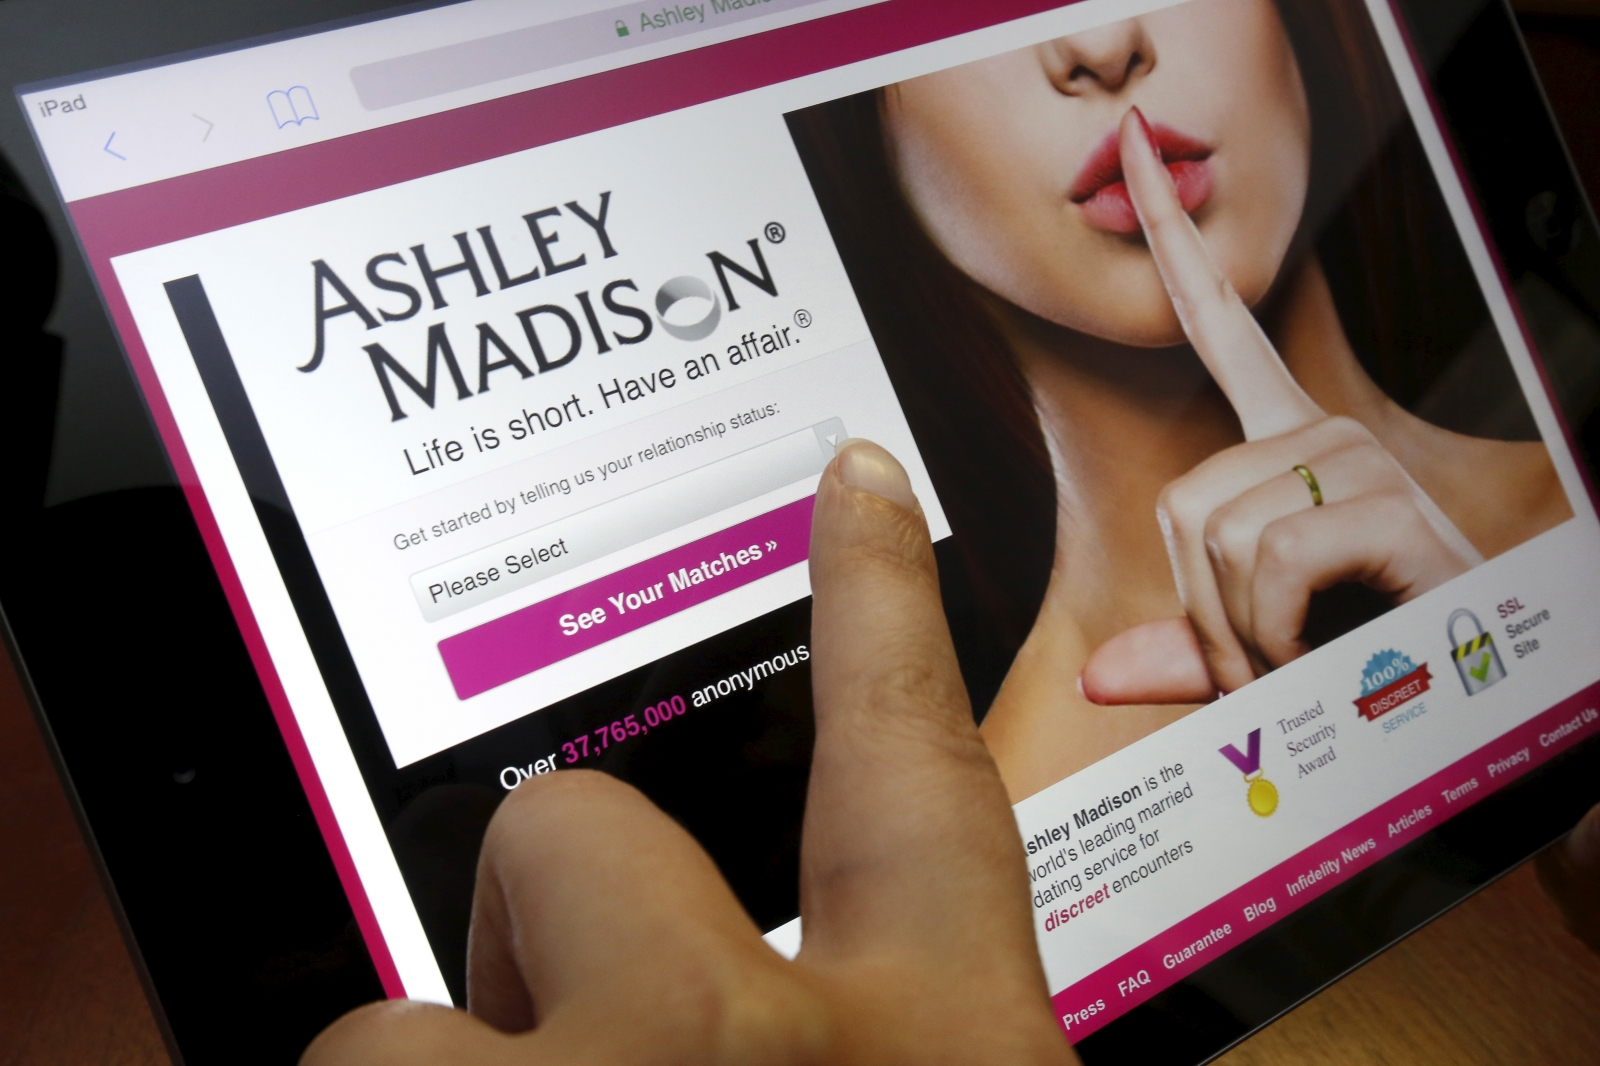 people on ashley madison